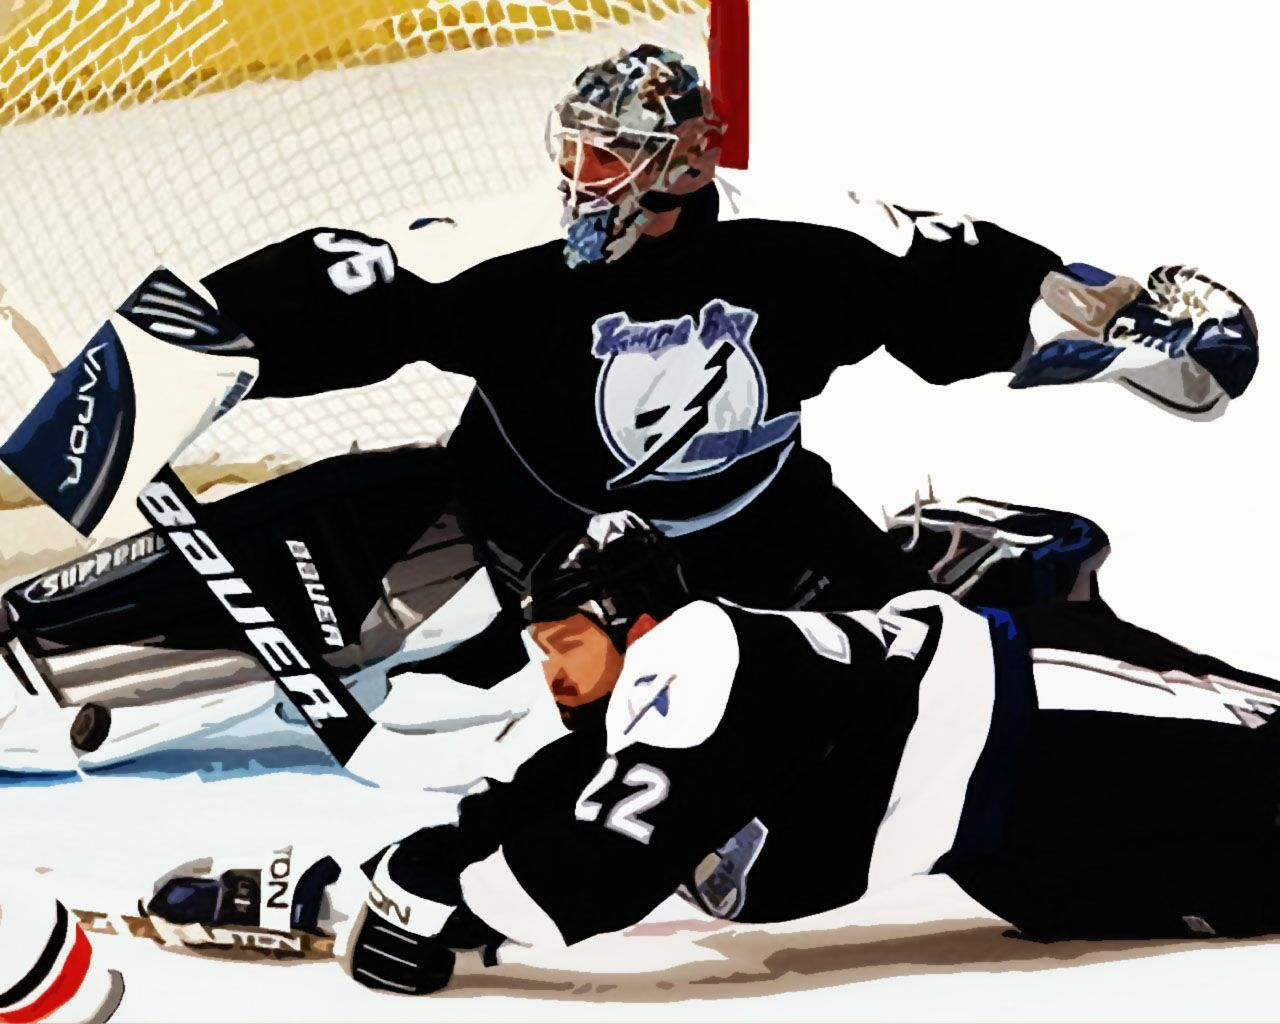 2004 Flyers Vs Lightning   Sports Wallpaper Image featuring Ice Hockey 1280x1024